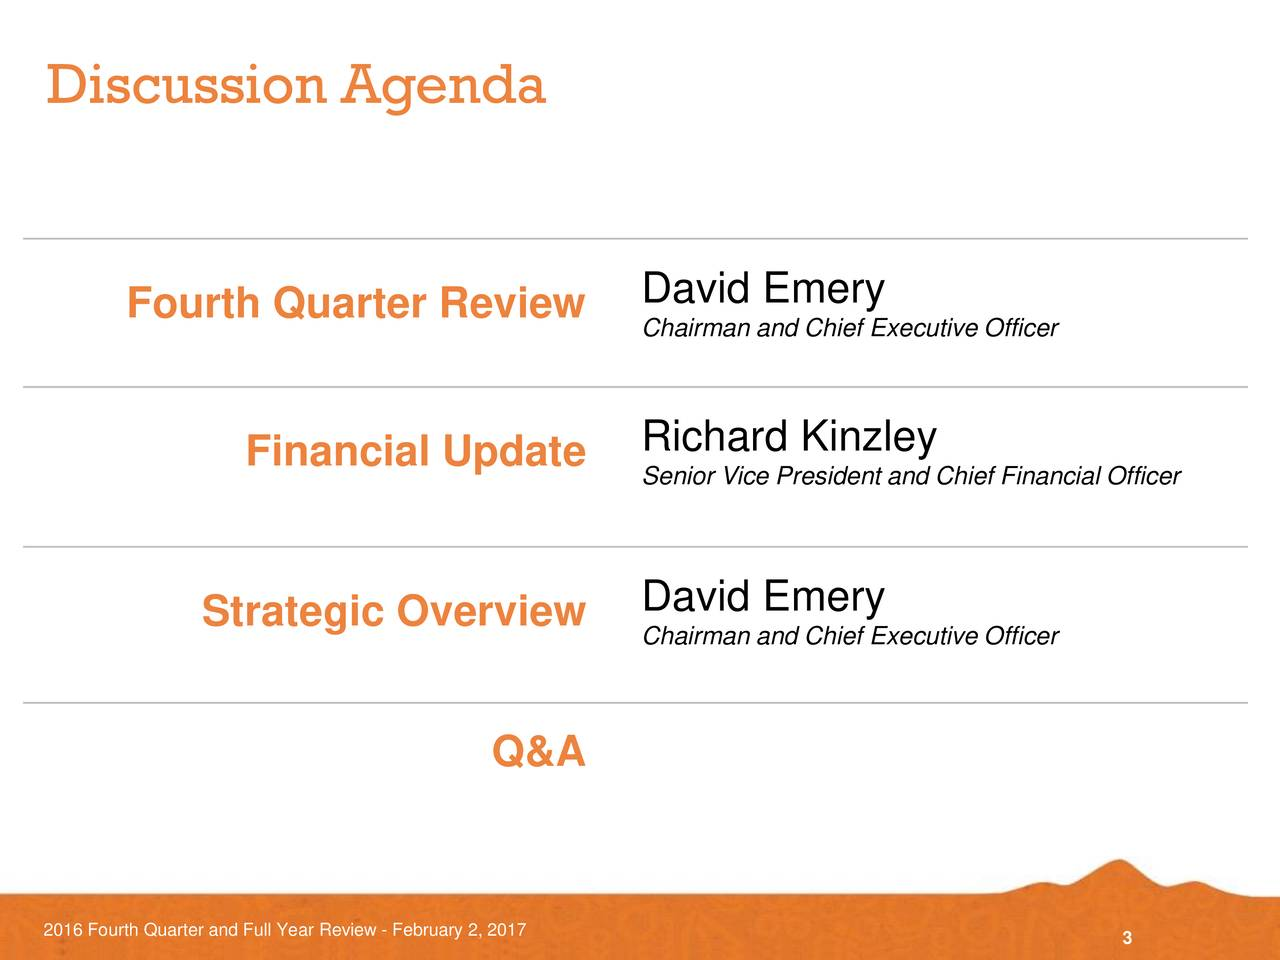 Fourth Quarter Review Chairman and Chief Executive Officer Financial Update Richard Kinzley Senior Vice President and Chief Financial Officer David Emery Strategic Overview Chairman and Chief Executive Officer Q&A 2016 Fourth Quarter and Full Year Review - February 2, 2017